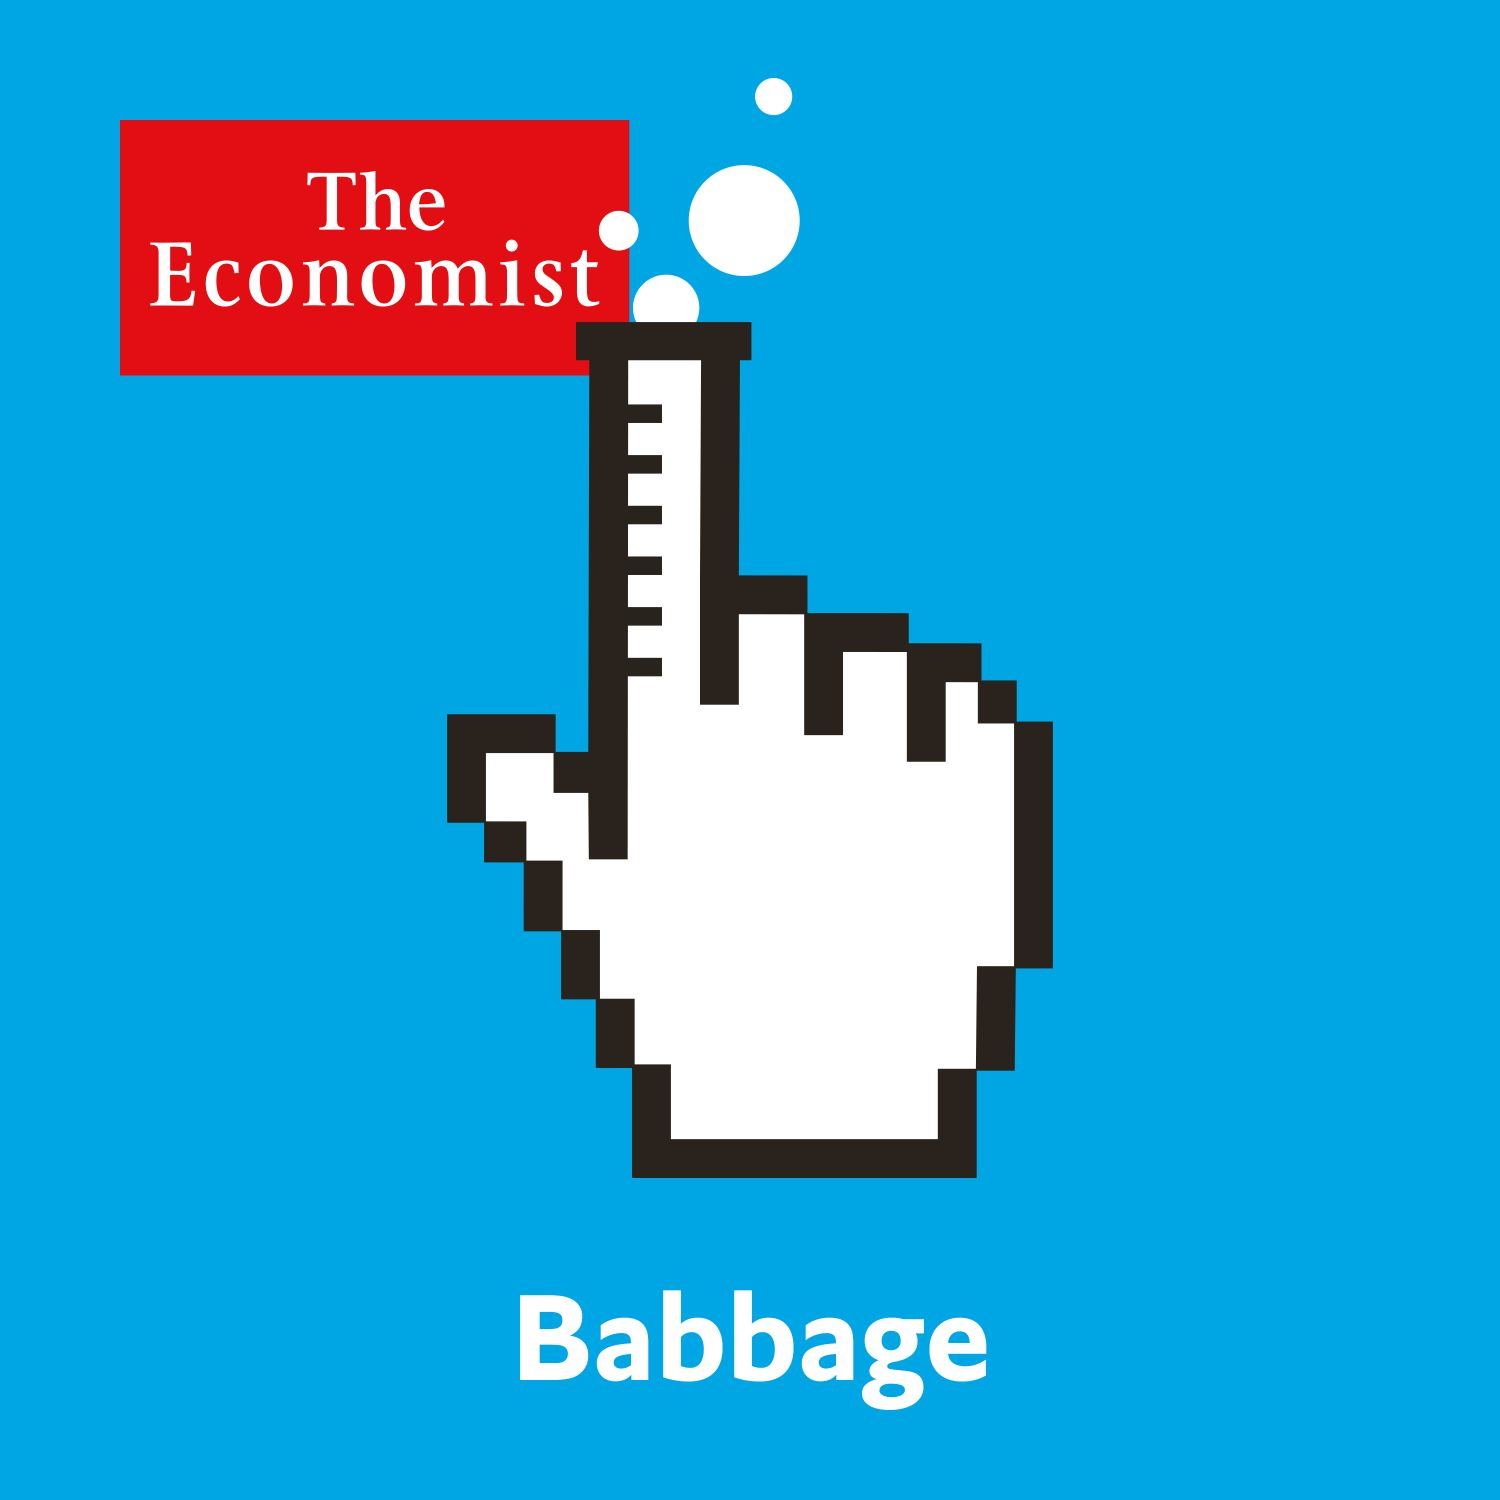 Babbage: Economist in space